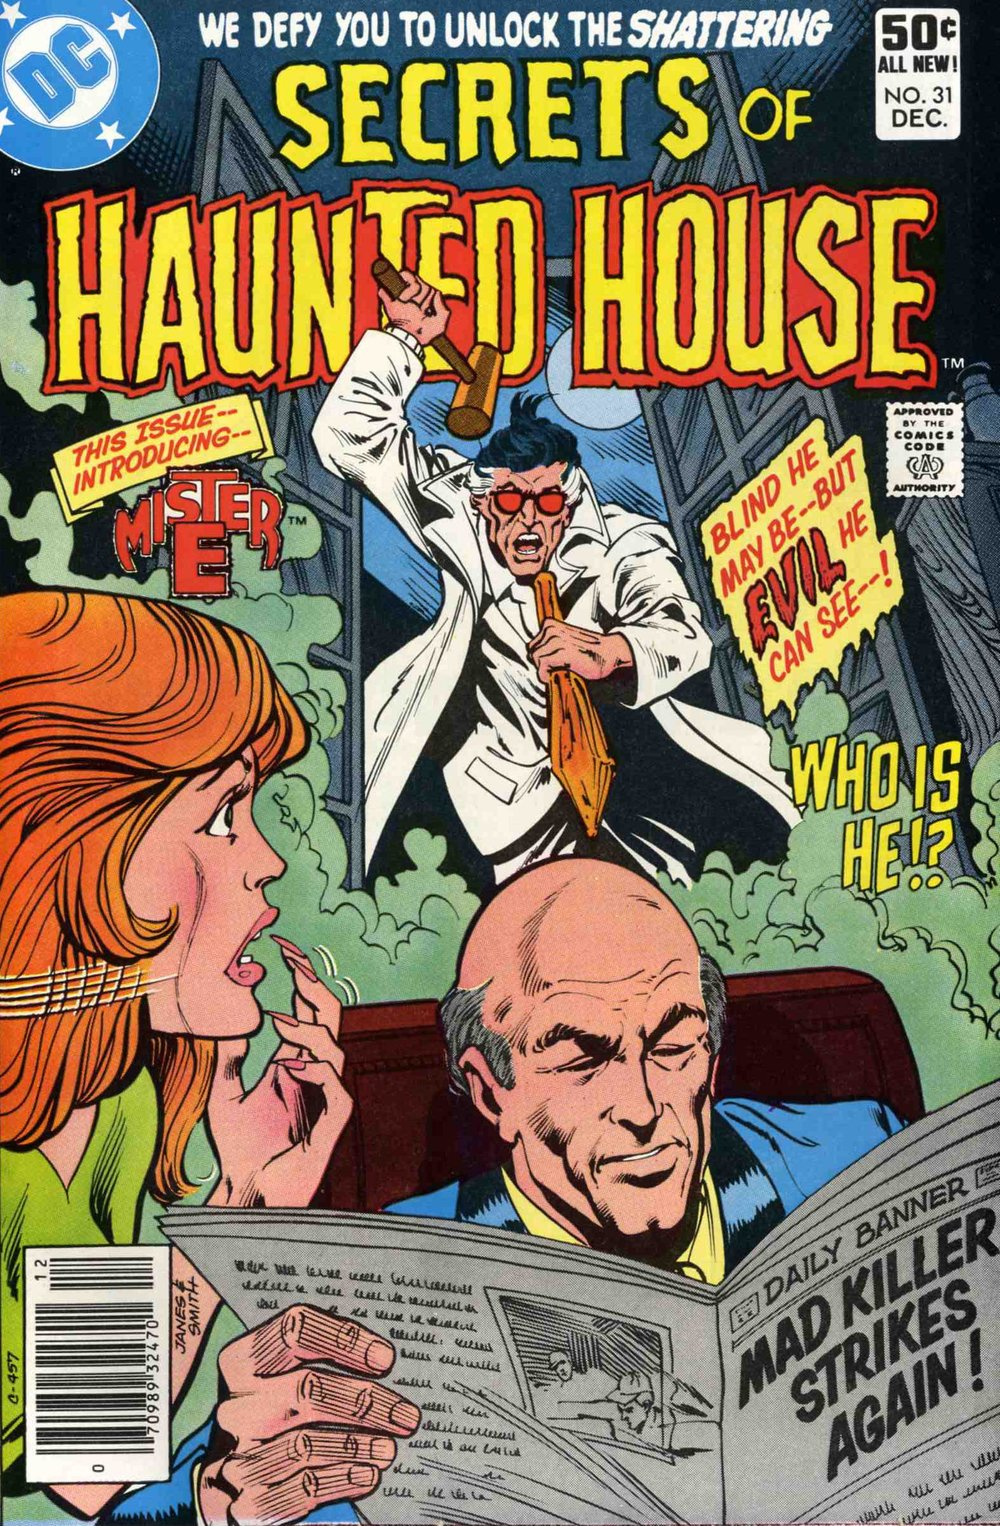 Secrets of Haunted House (1975) #31, cover penciled by Jim Janes & inked by Bob Smith.